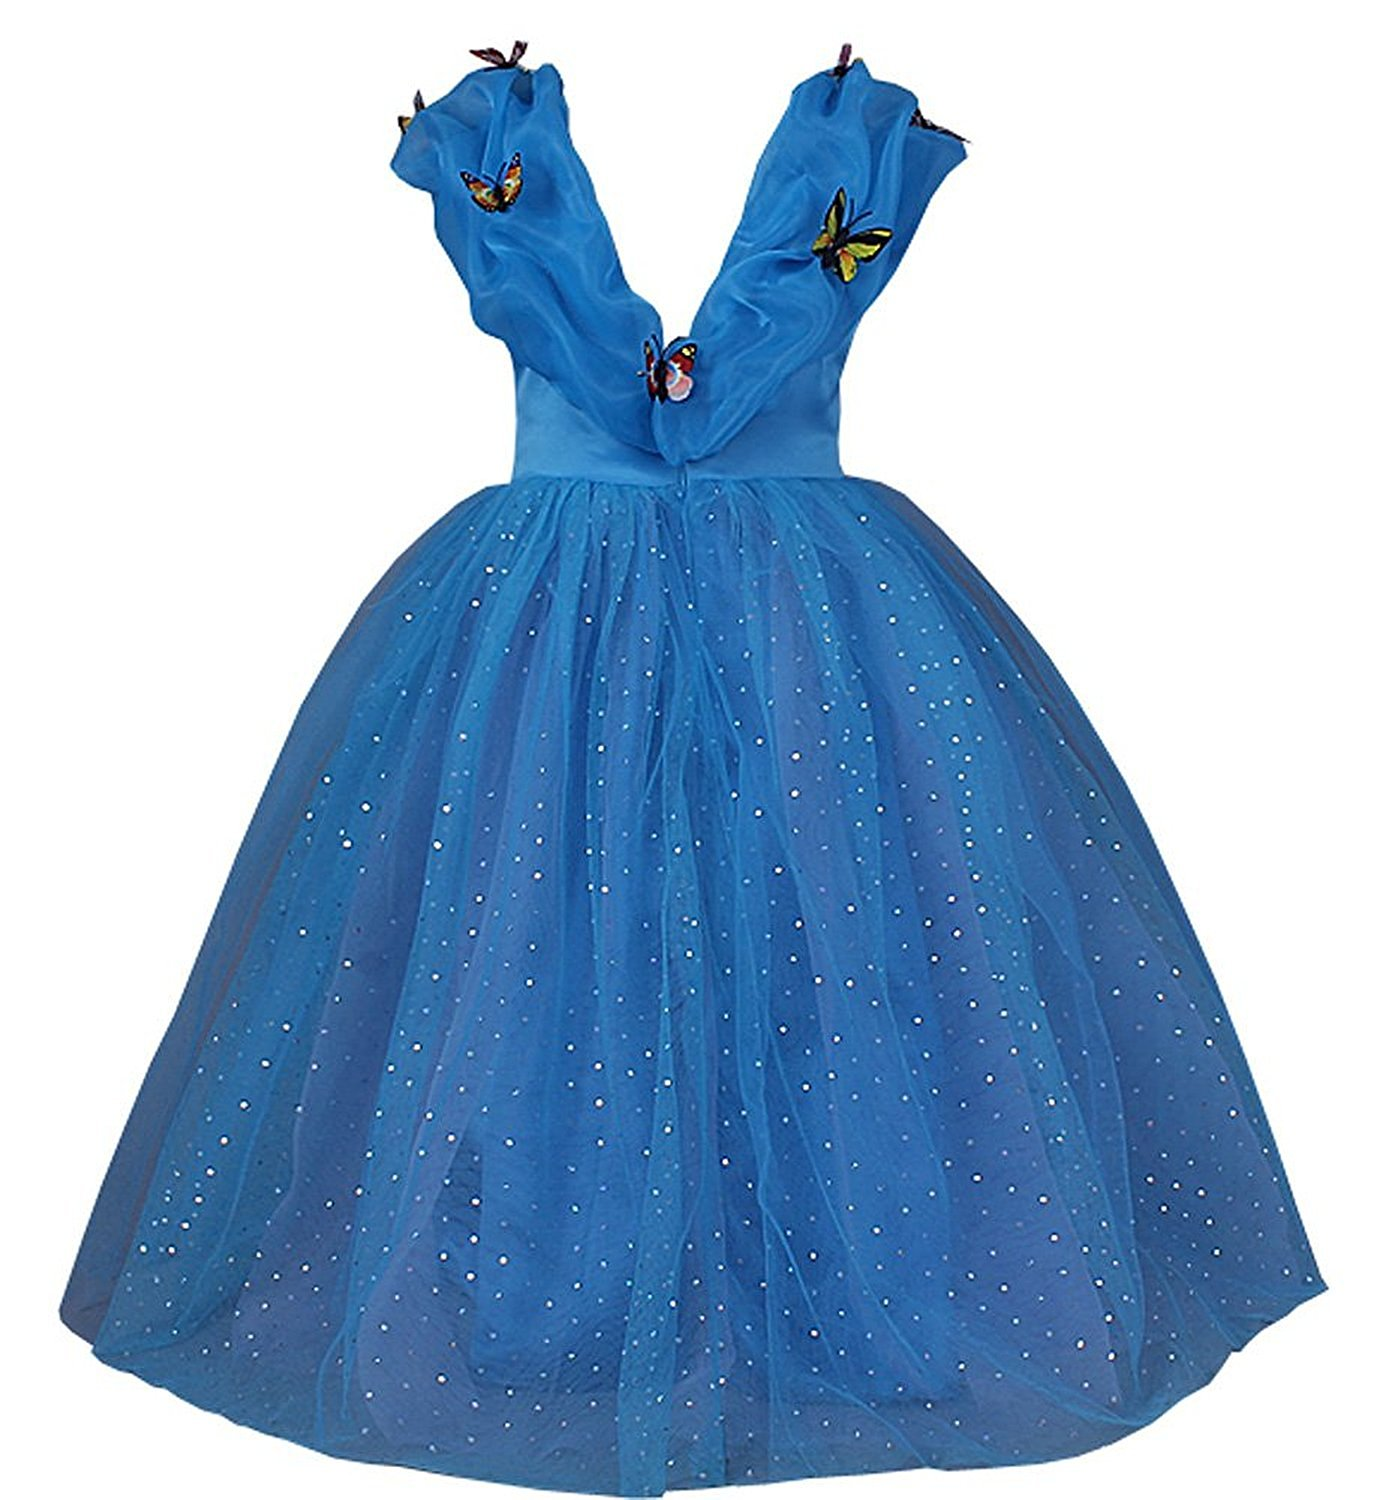 1391x1500 Jerrisapparel New Cinderella Dress Princess Costume